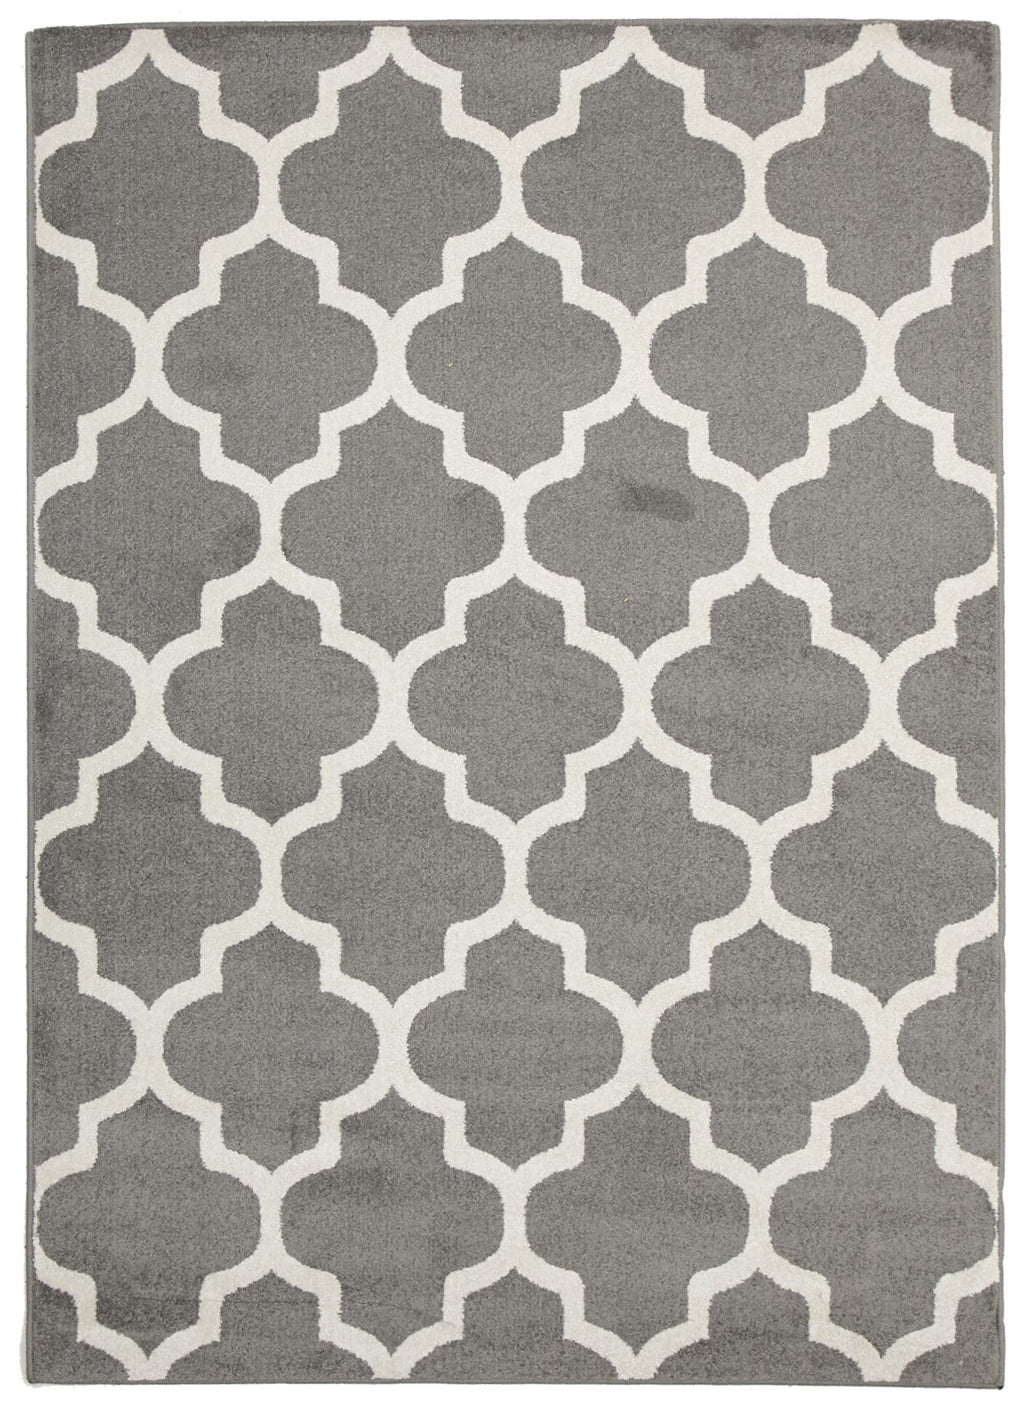 Touraine Grey Trellis Indoor Outdoor Rug